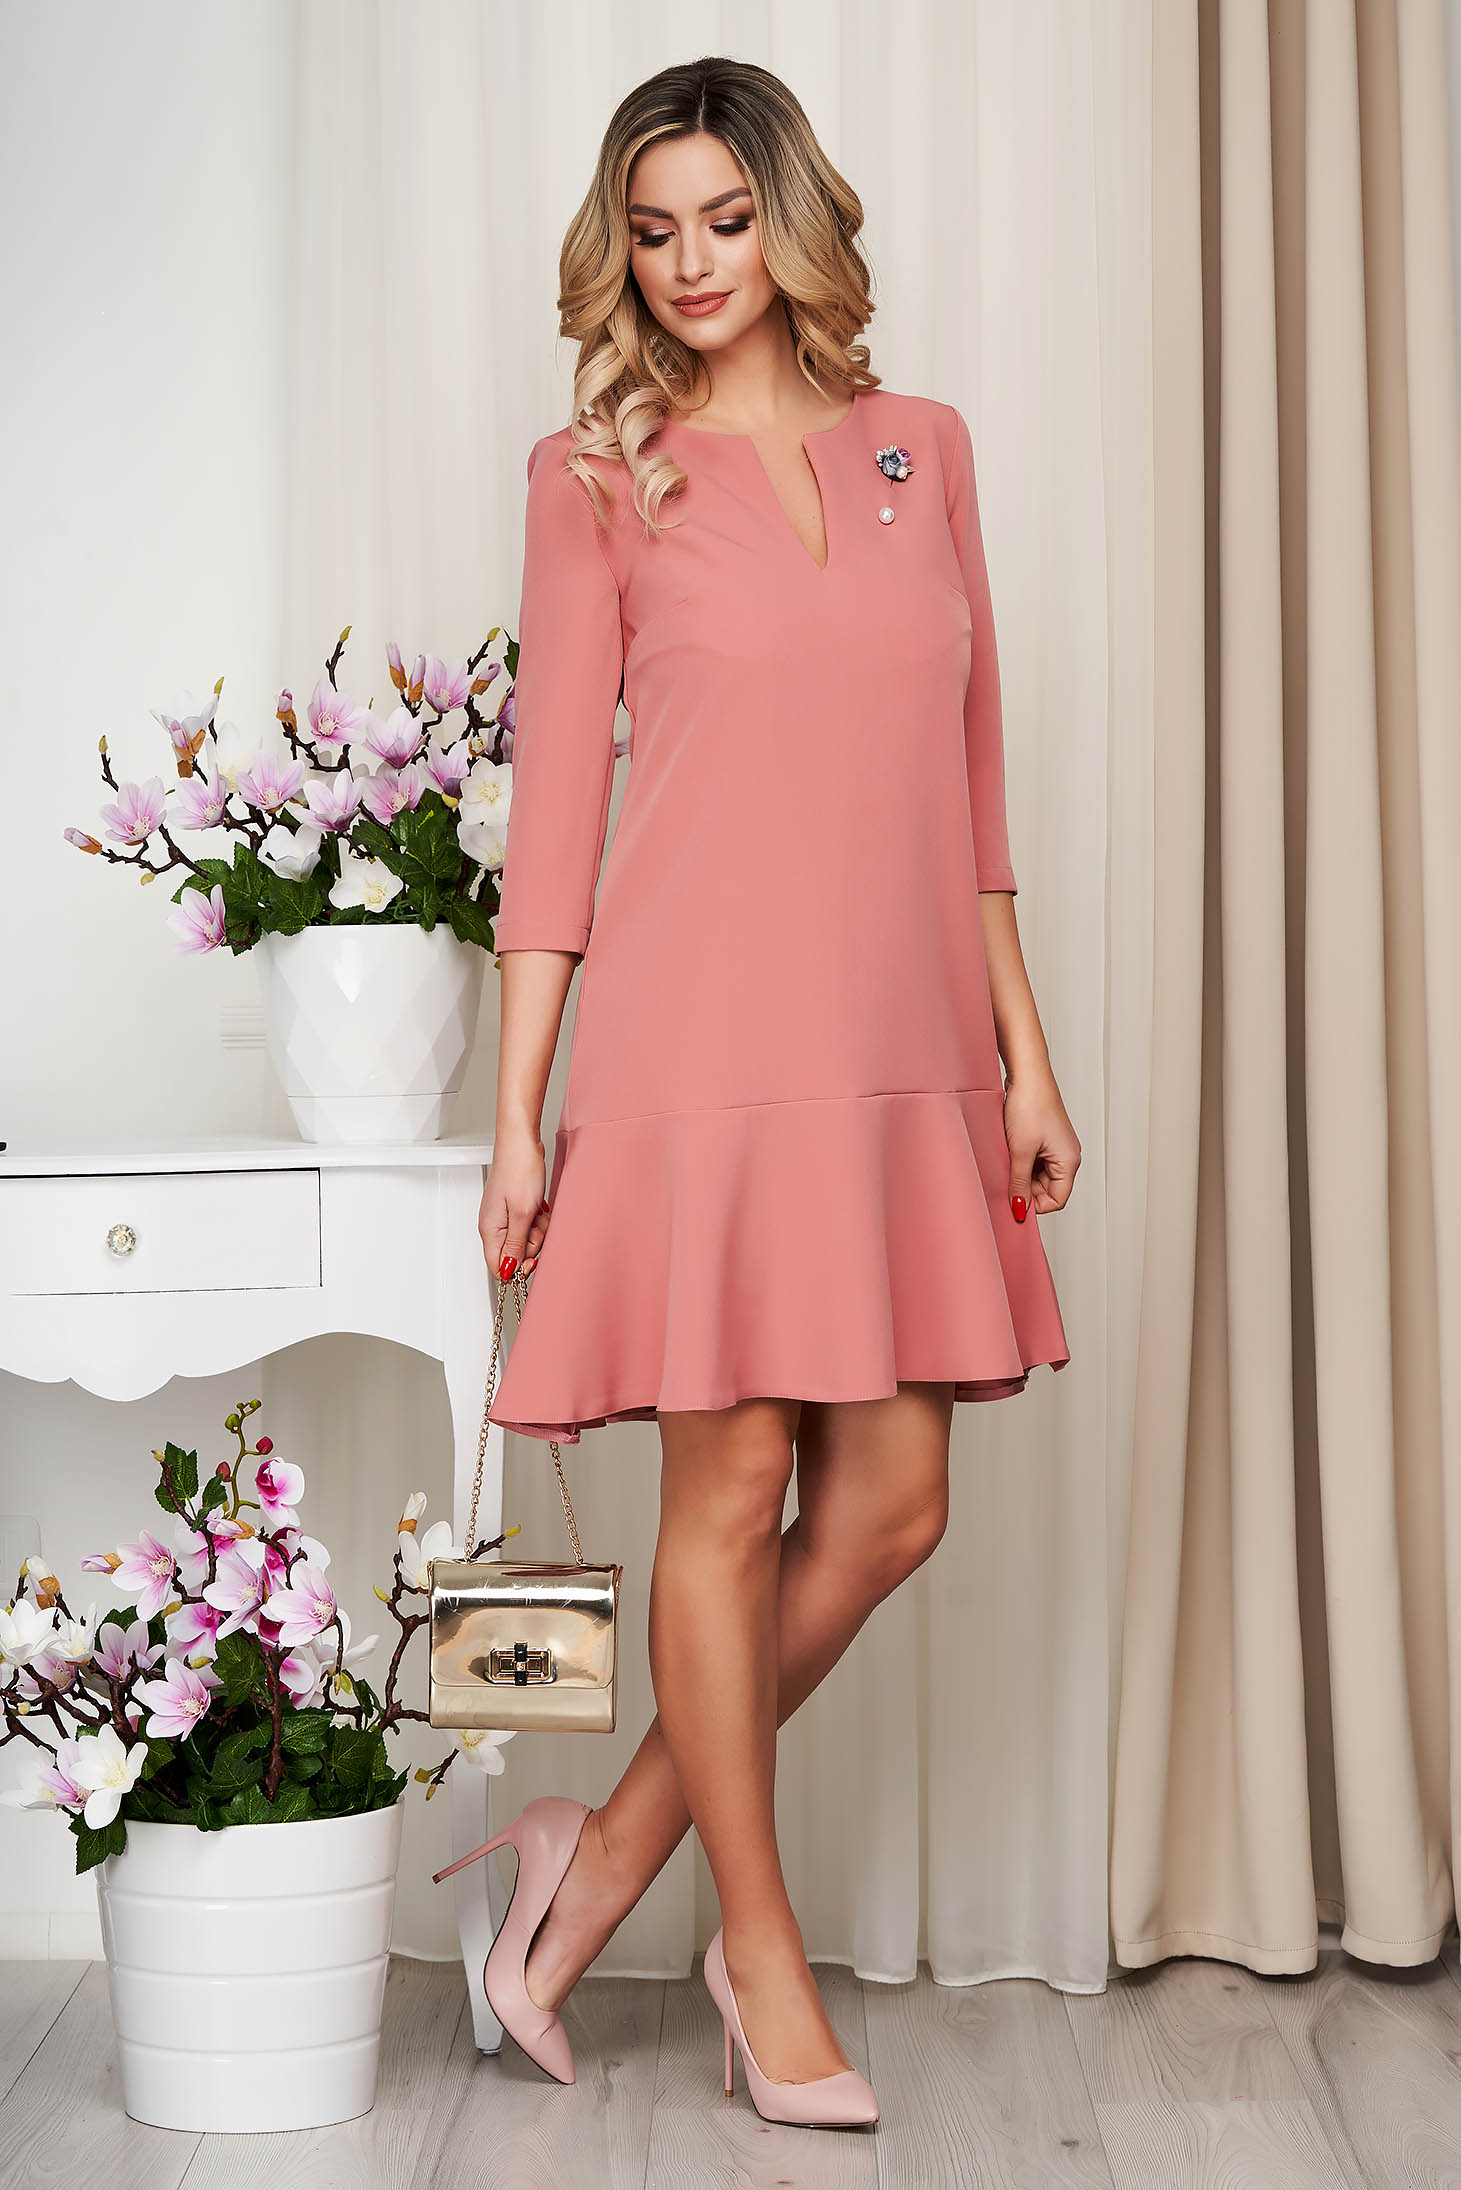 StarShinerS lightpink cloth without clothing dress with v-neckline accessorized with breastpin